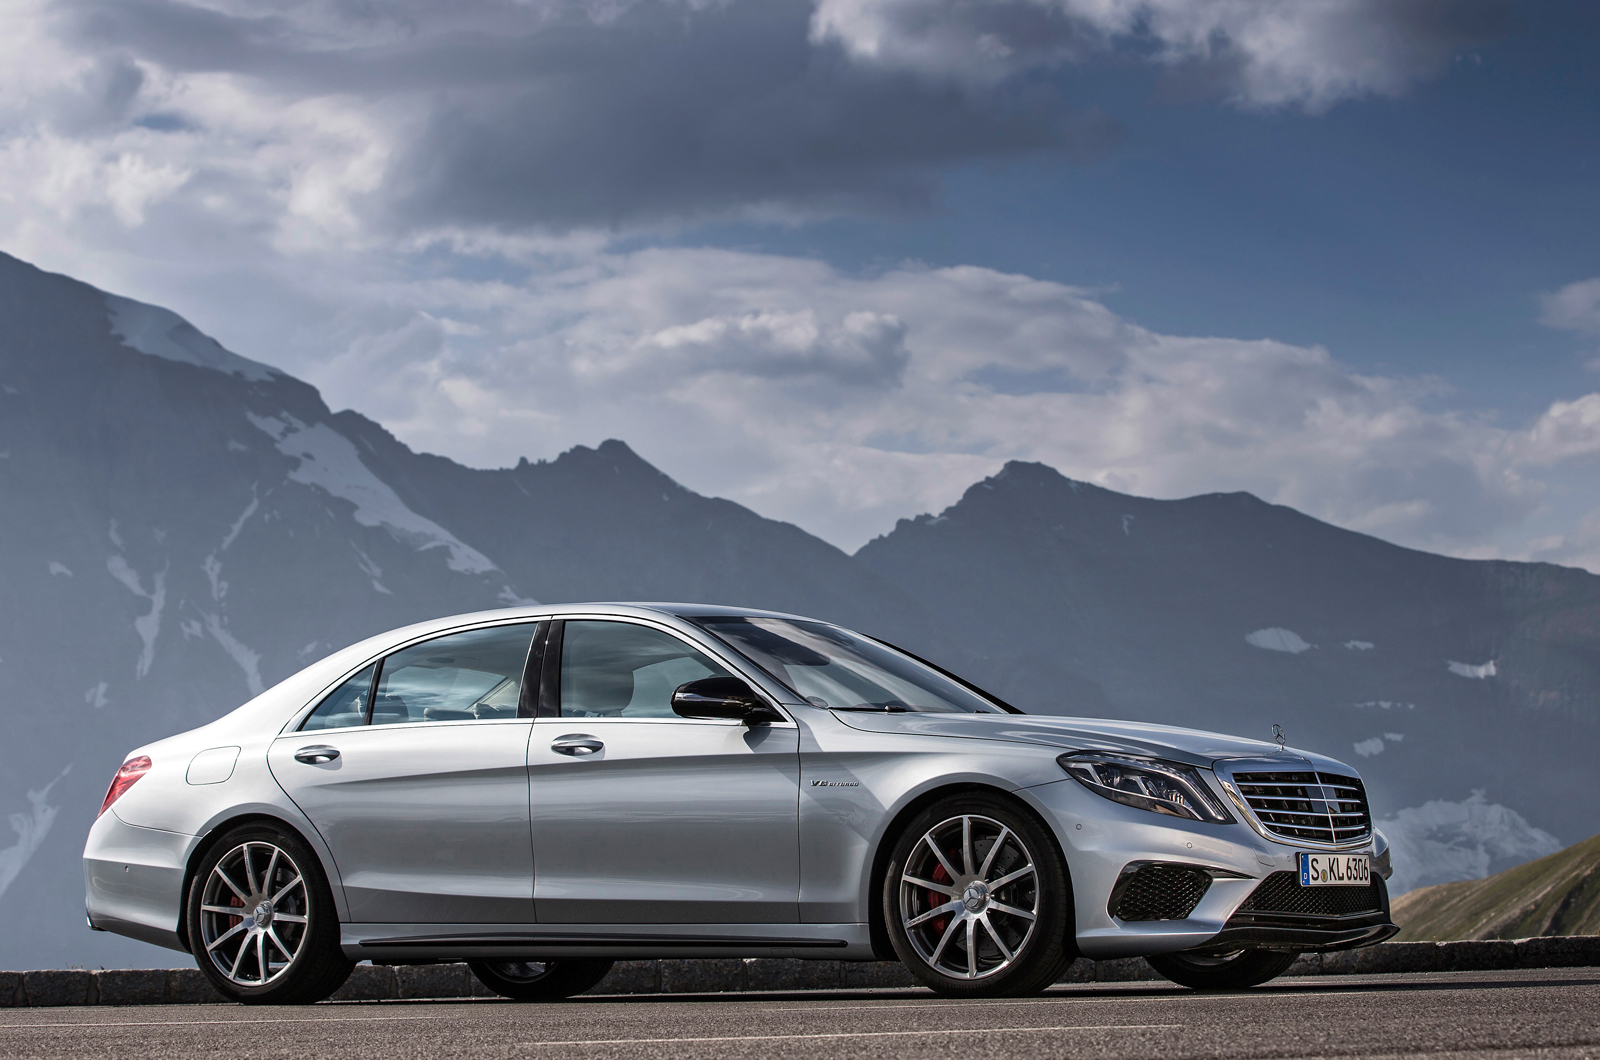 Mercedes benz s63 amg first drive review for Mercedes benz s class s63 amg